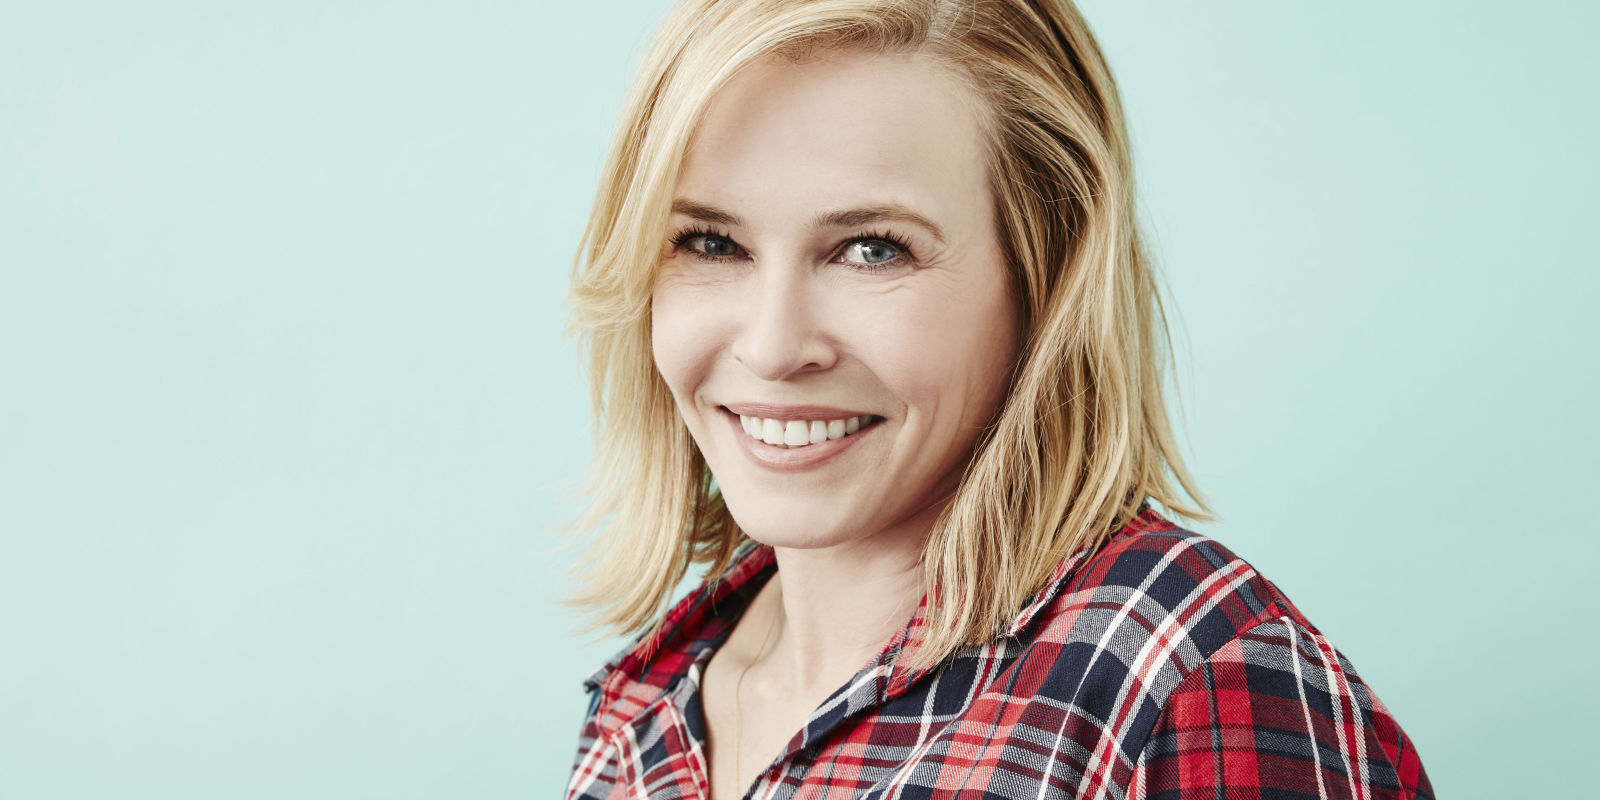 Chelsea Handler Speaks Out About Having Two Abortions at 16 Years Old